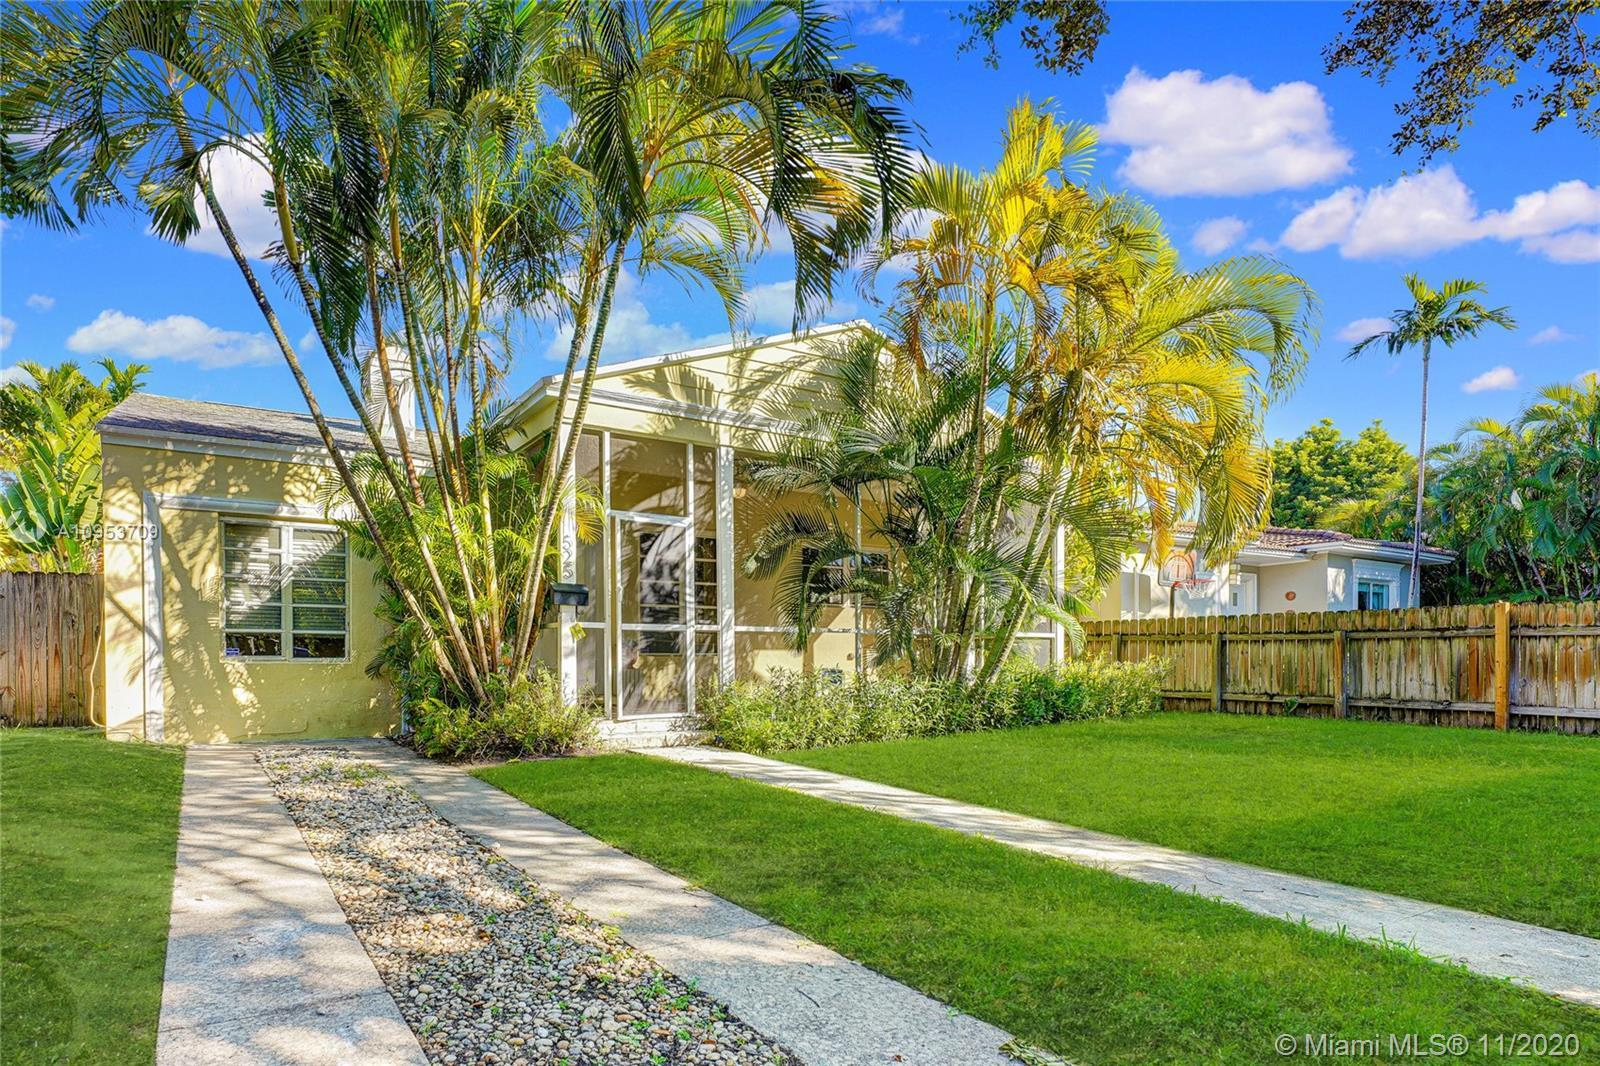 Miami Beach Charming 3/2 home, located on a traffic-free street in desirable Lakeview neighborhood i